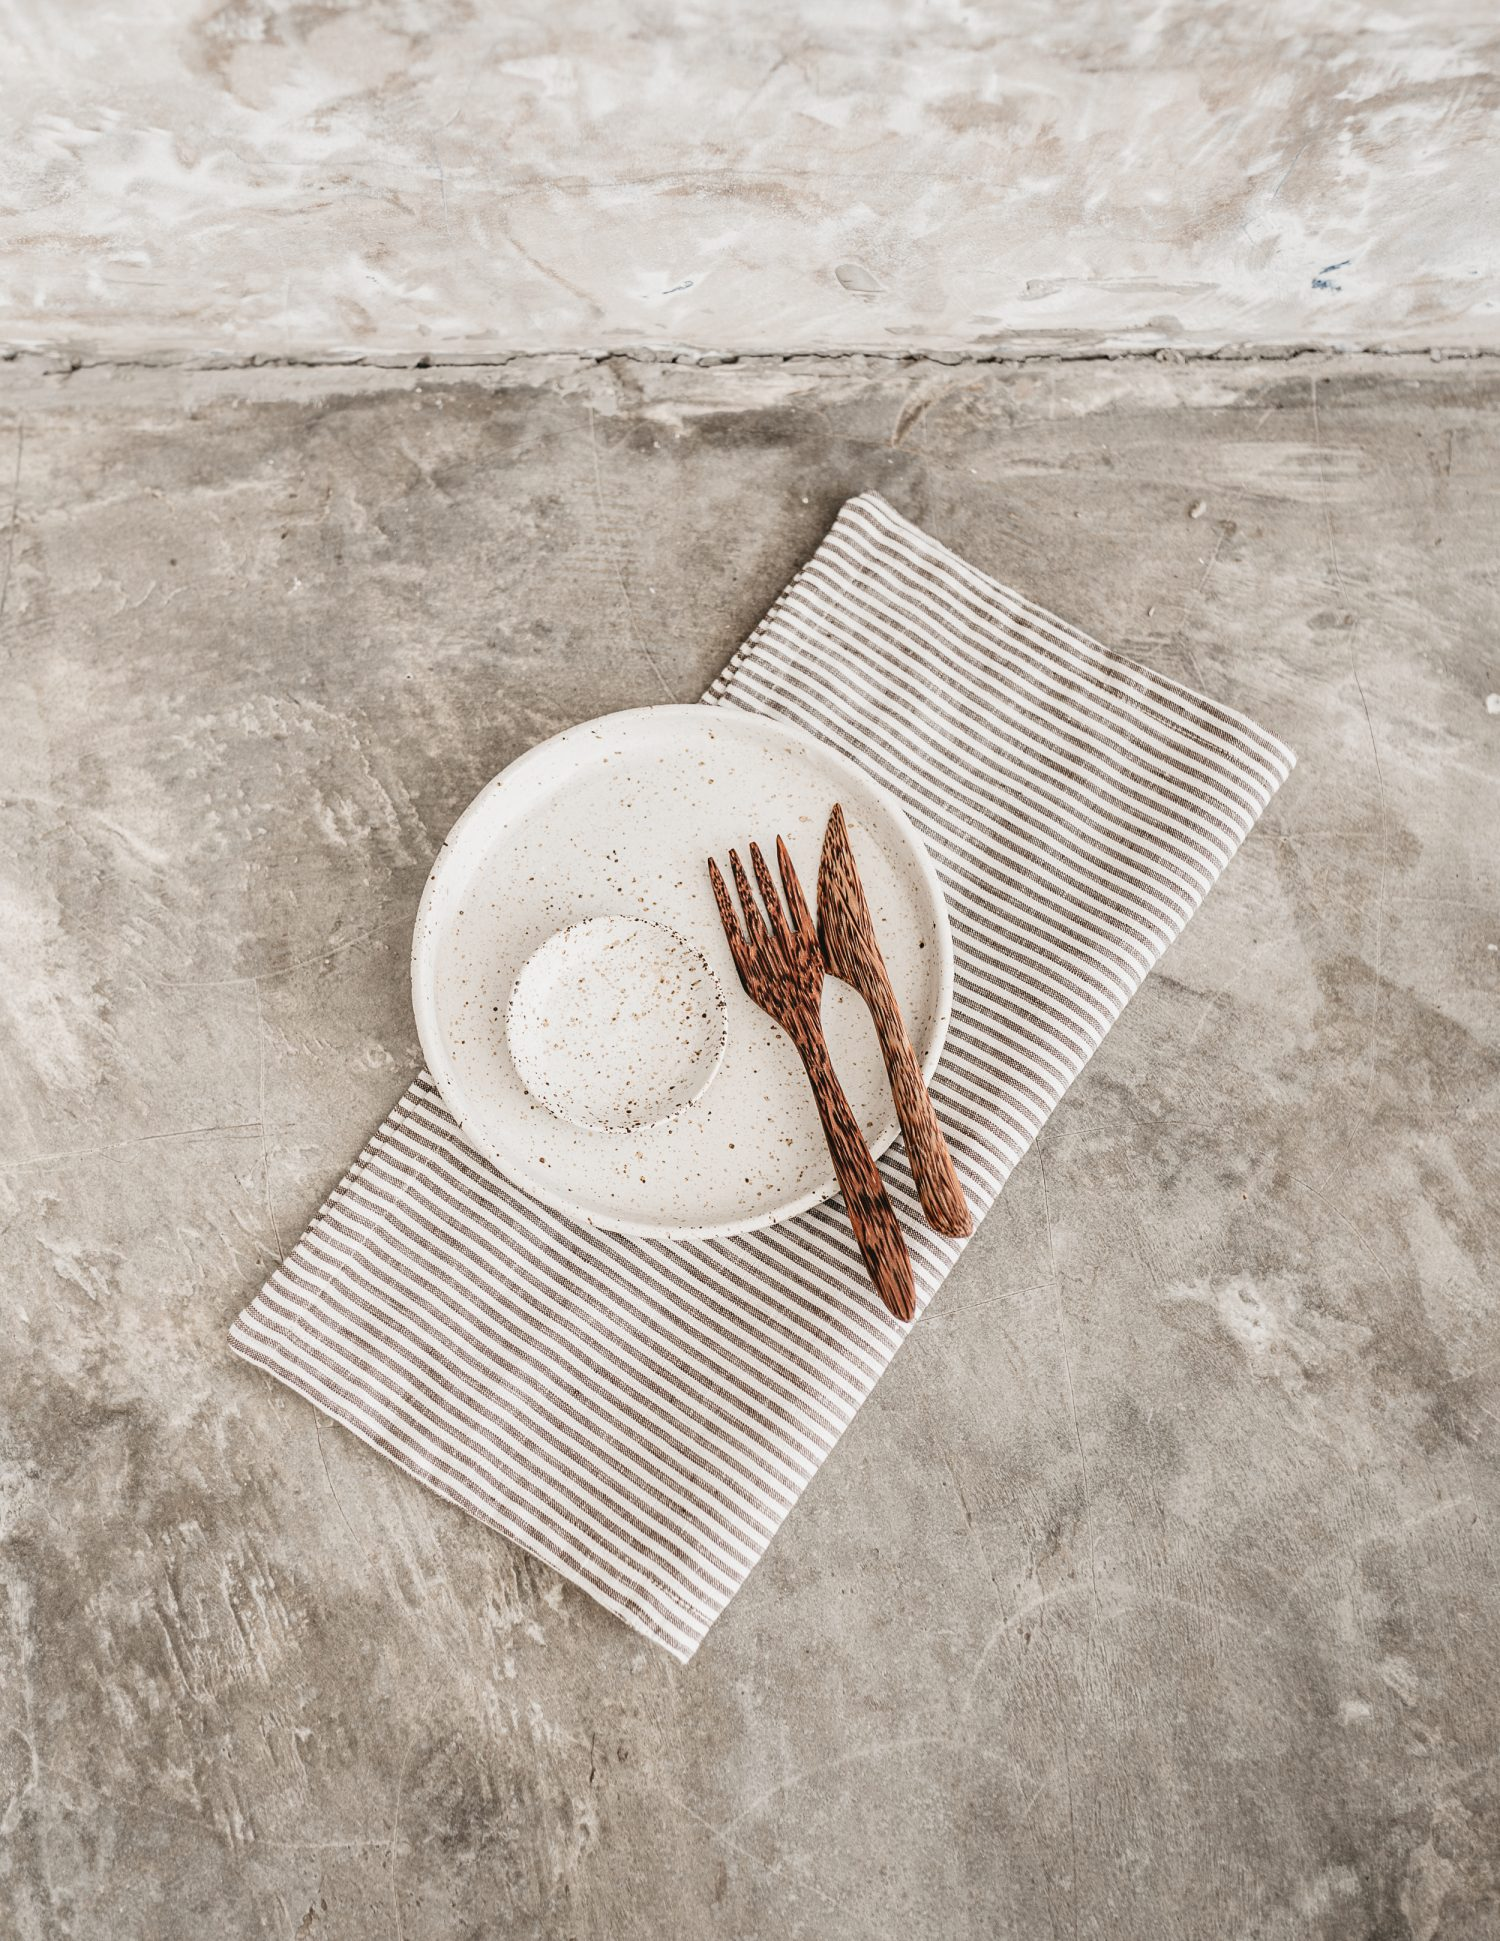 Nowhere & Everywhere Recovered Recycled Linens Redirected from Landfill Table Styling Setting Zero Waste Shop Ethically Made Sustainable